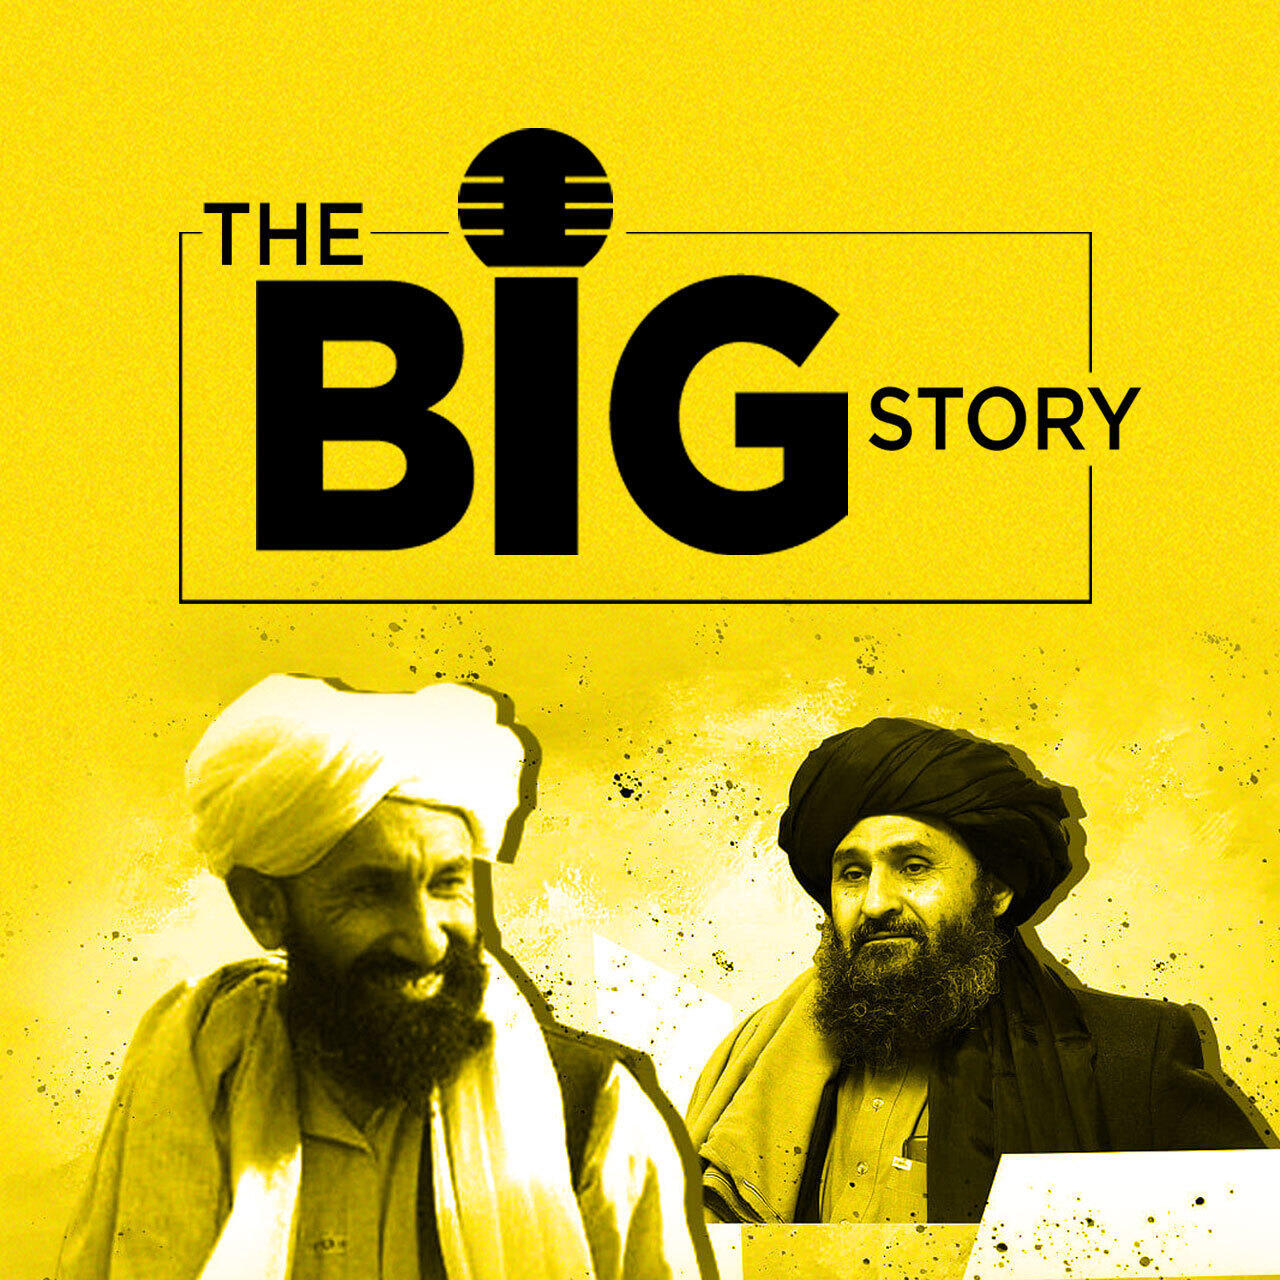 780: Afghanistan: Decoding the New Taliban 'Caretaker' Government and Leaders